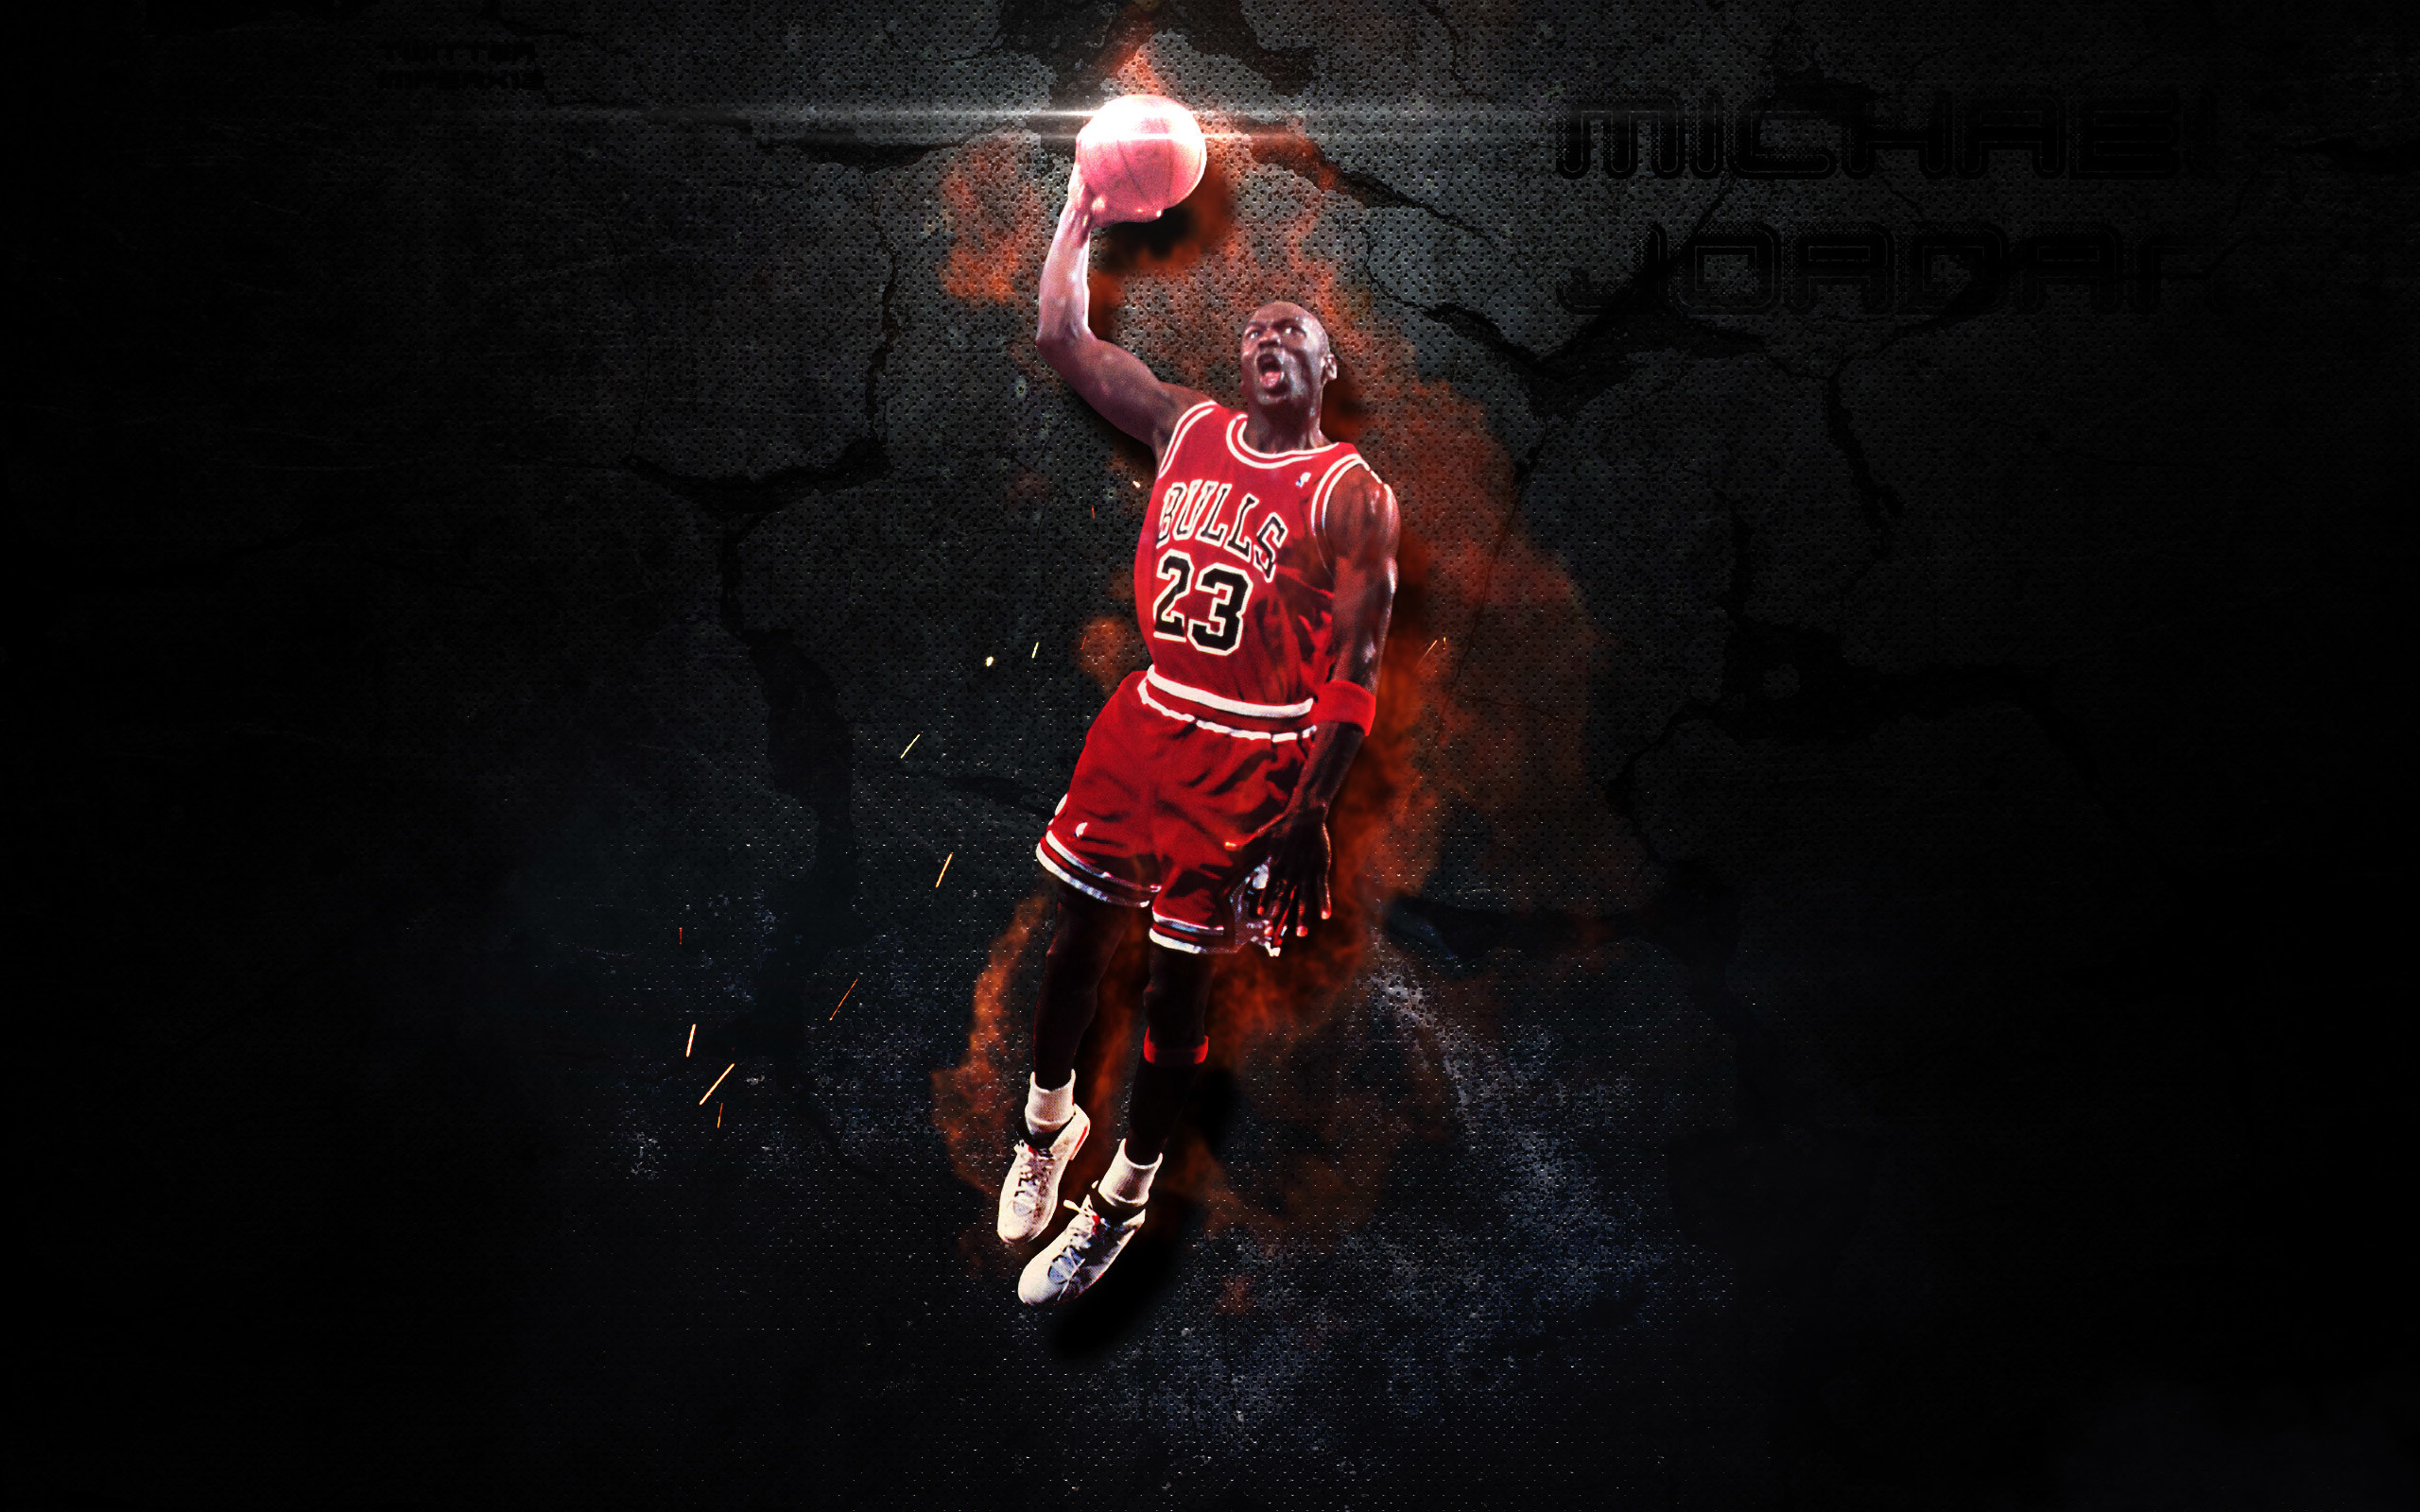 2560x1600 michael jordan wallpaper hd hd background wallpapers free amazing cool  tablet 4k high definition